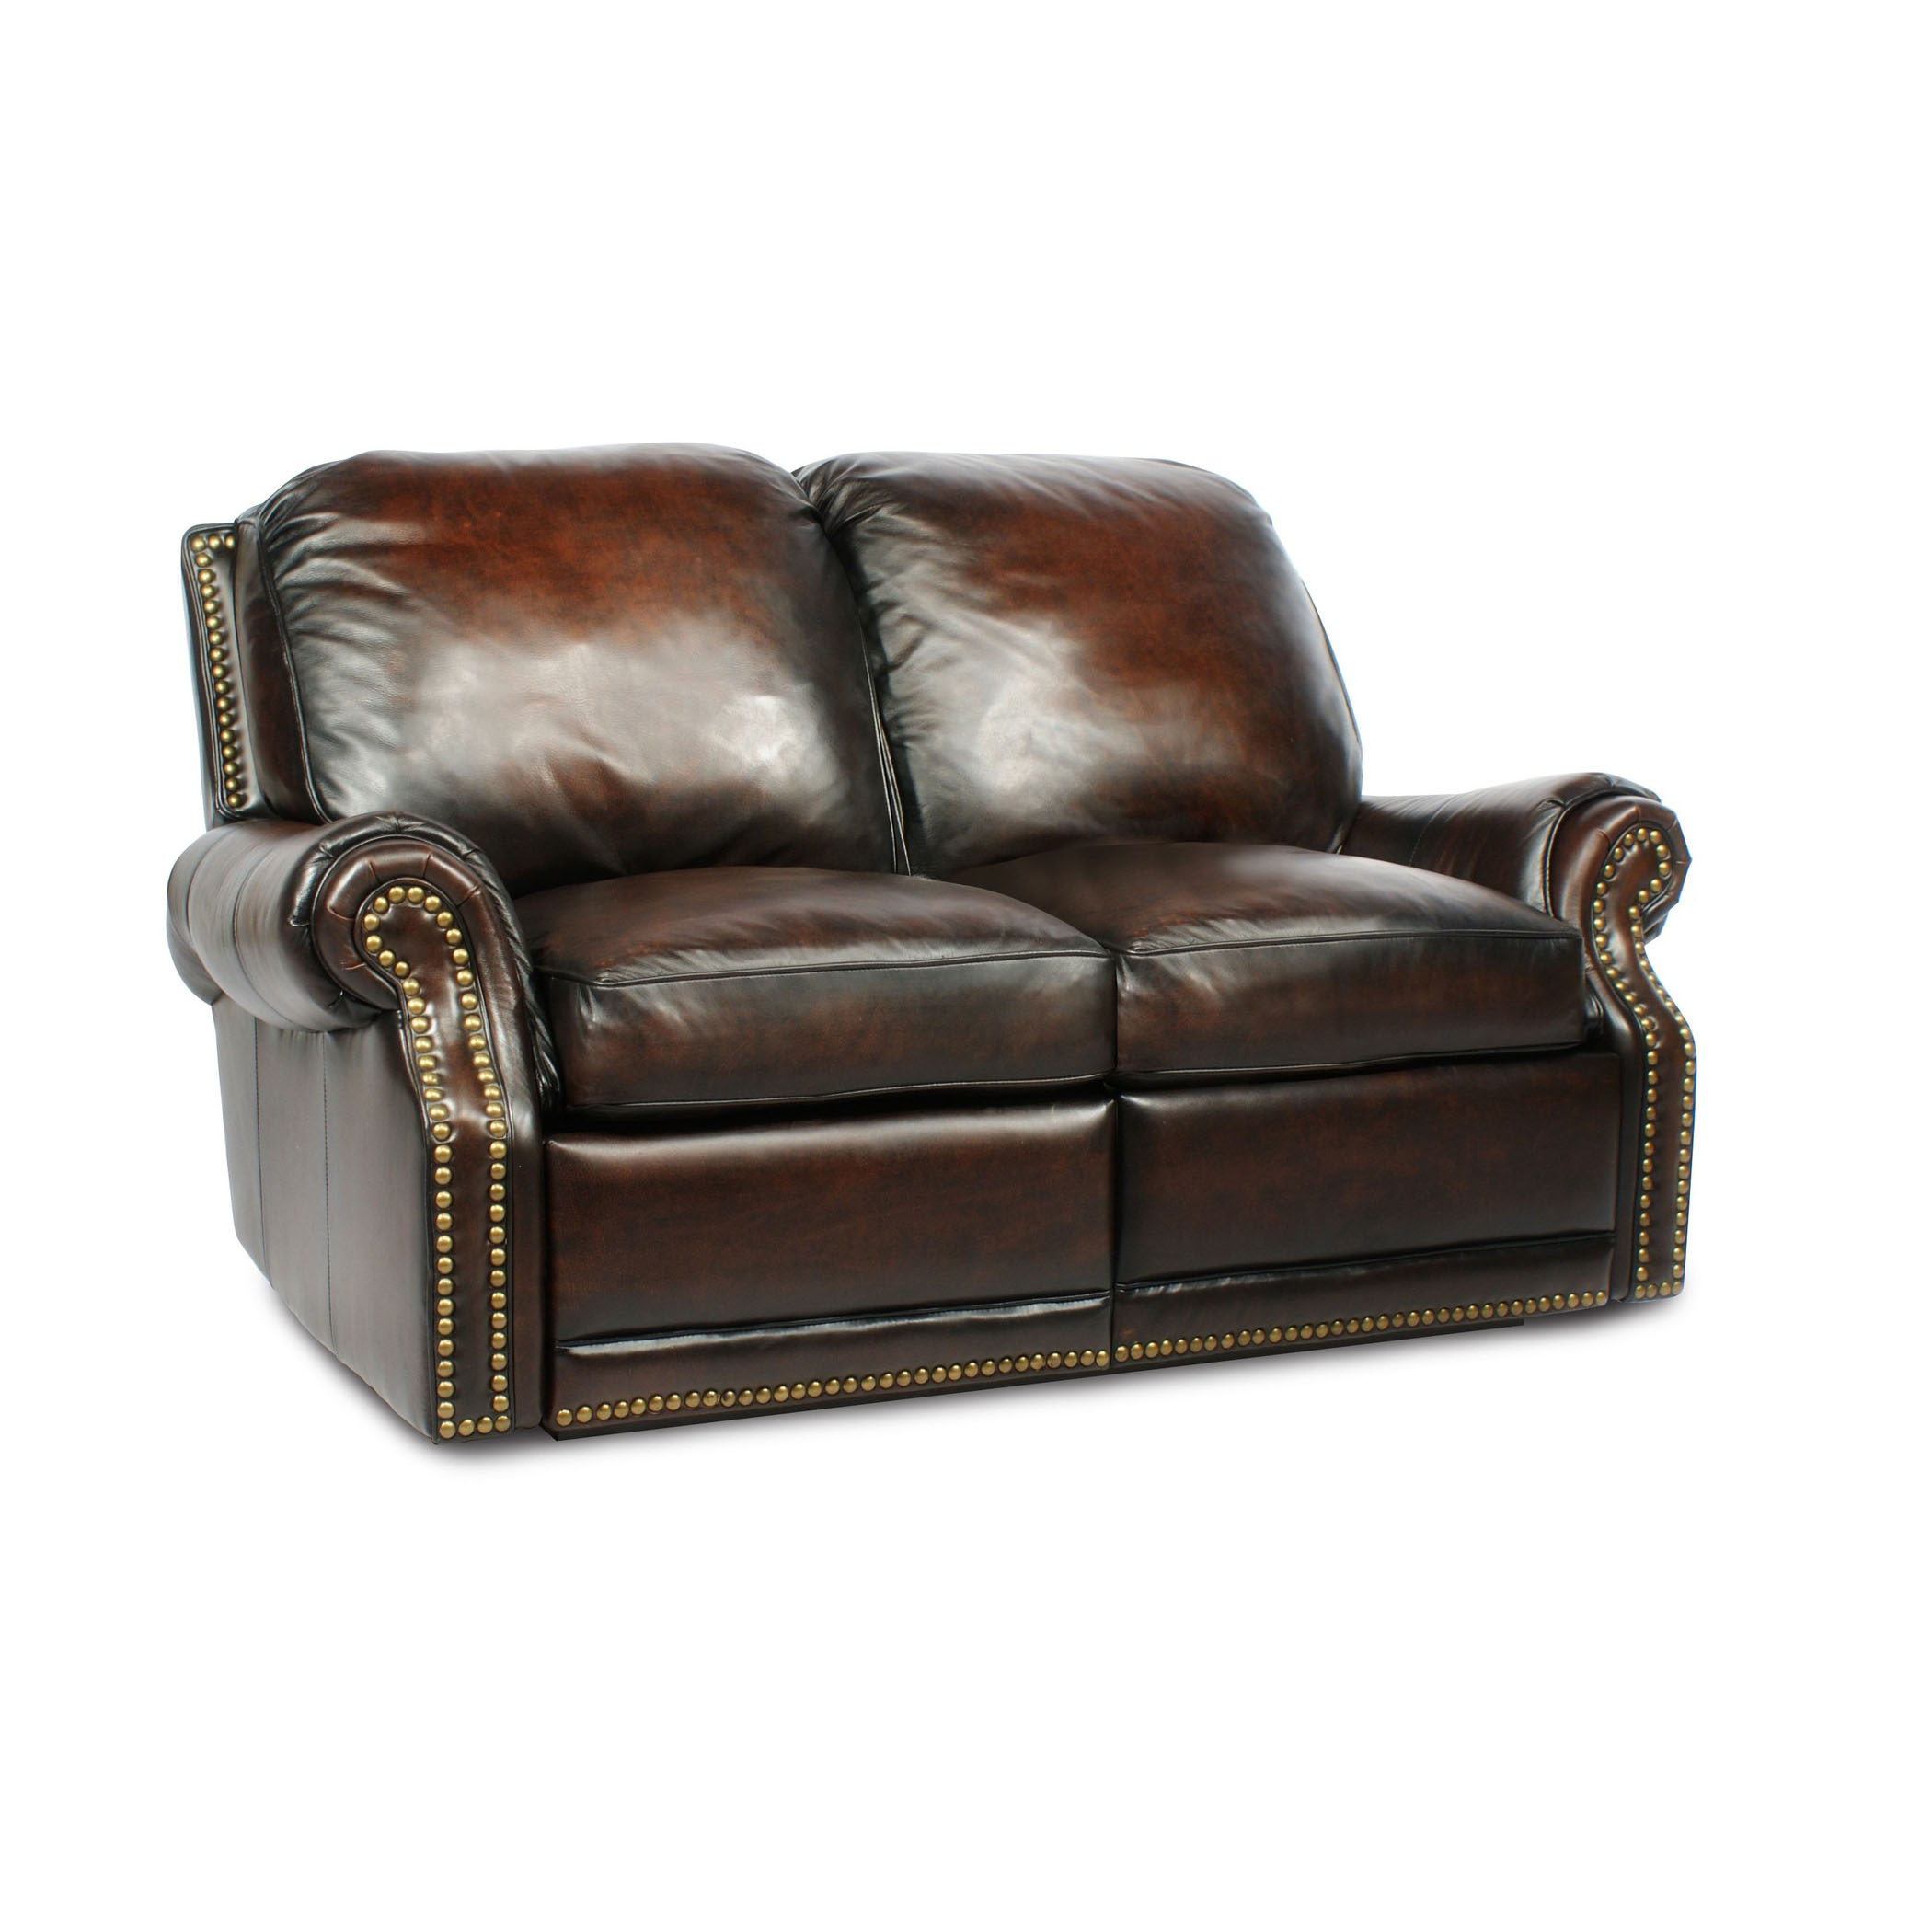 Barcalounger premier ii leather 2 seat loveseat sofa leather 2 seat loveseat sofa furniture Leather sofa and loveseat recliner